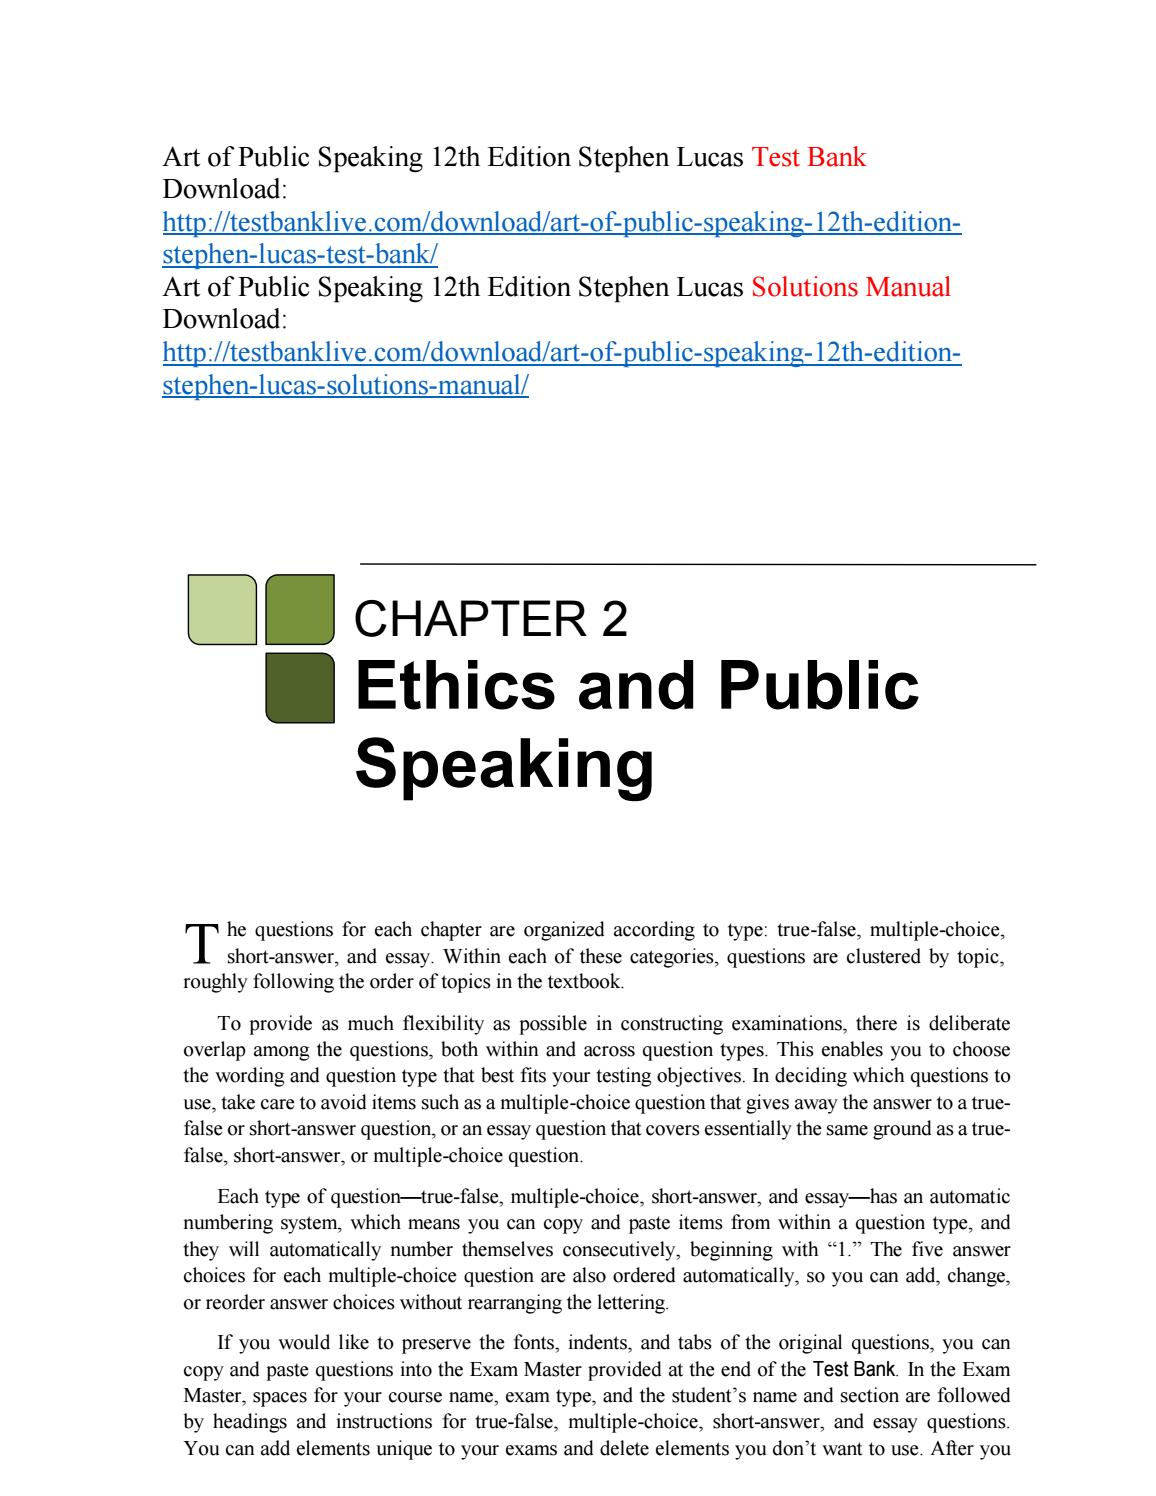 009 Public Speaking Essay Example Page 1 Stunning Topics Introduction Full